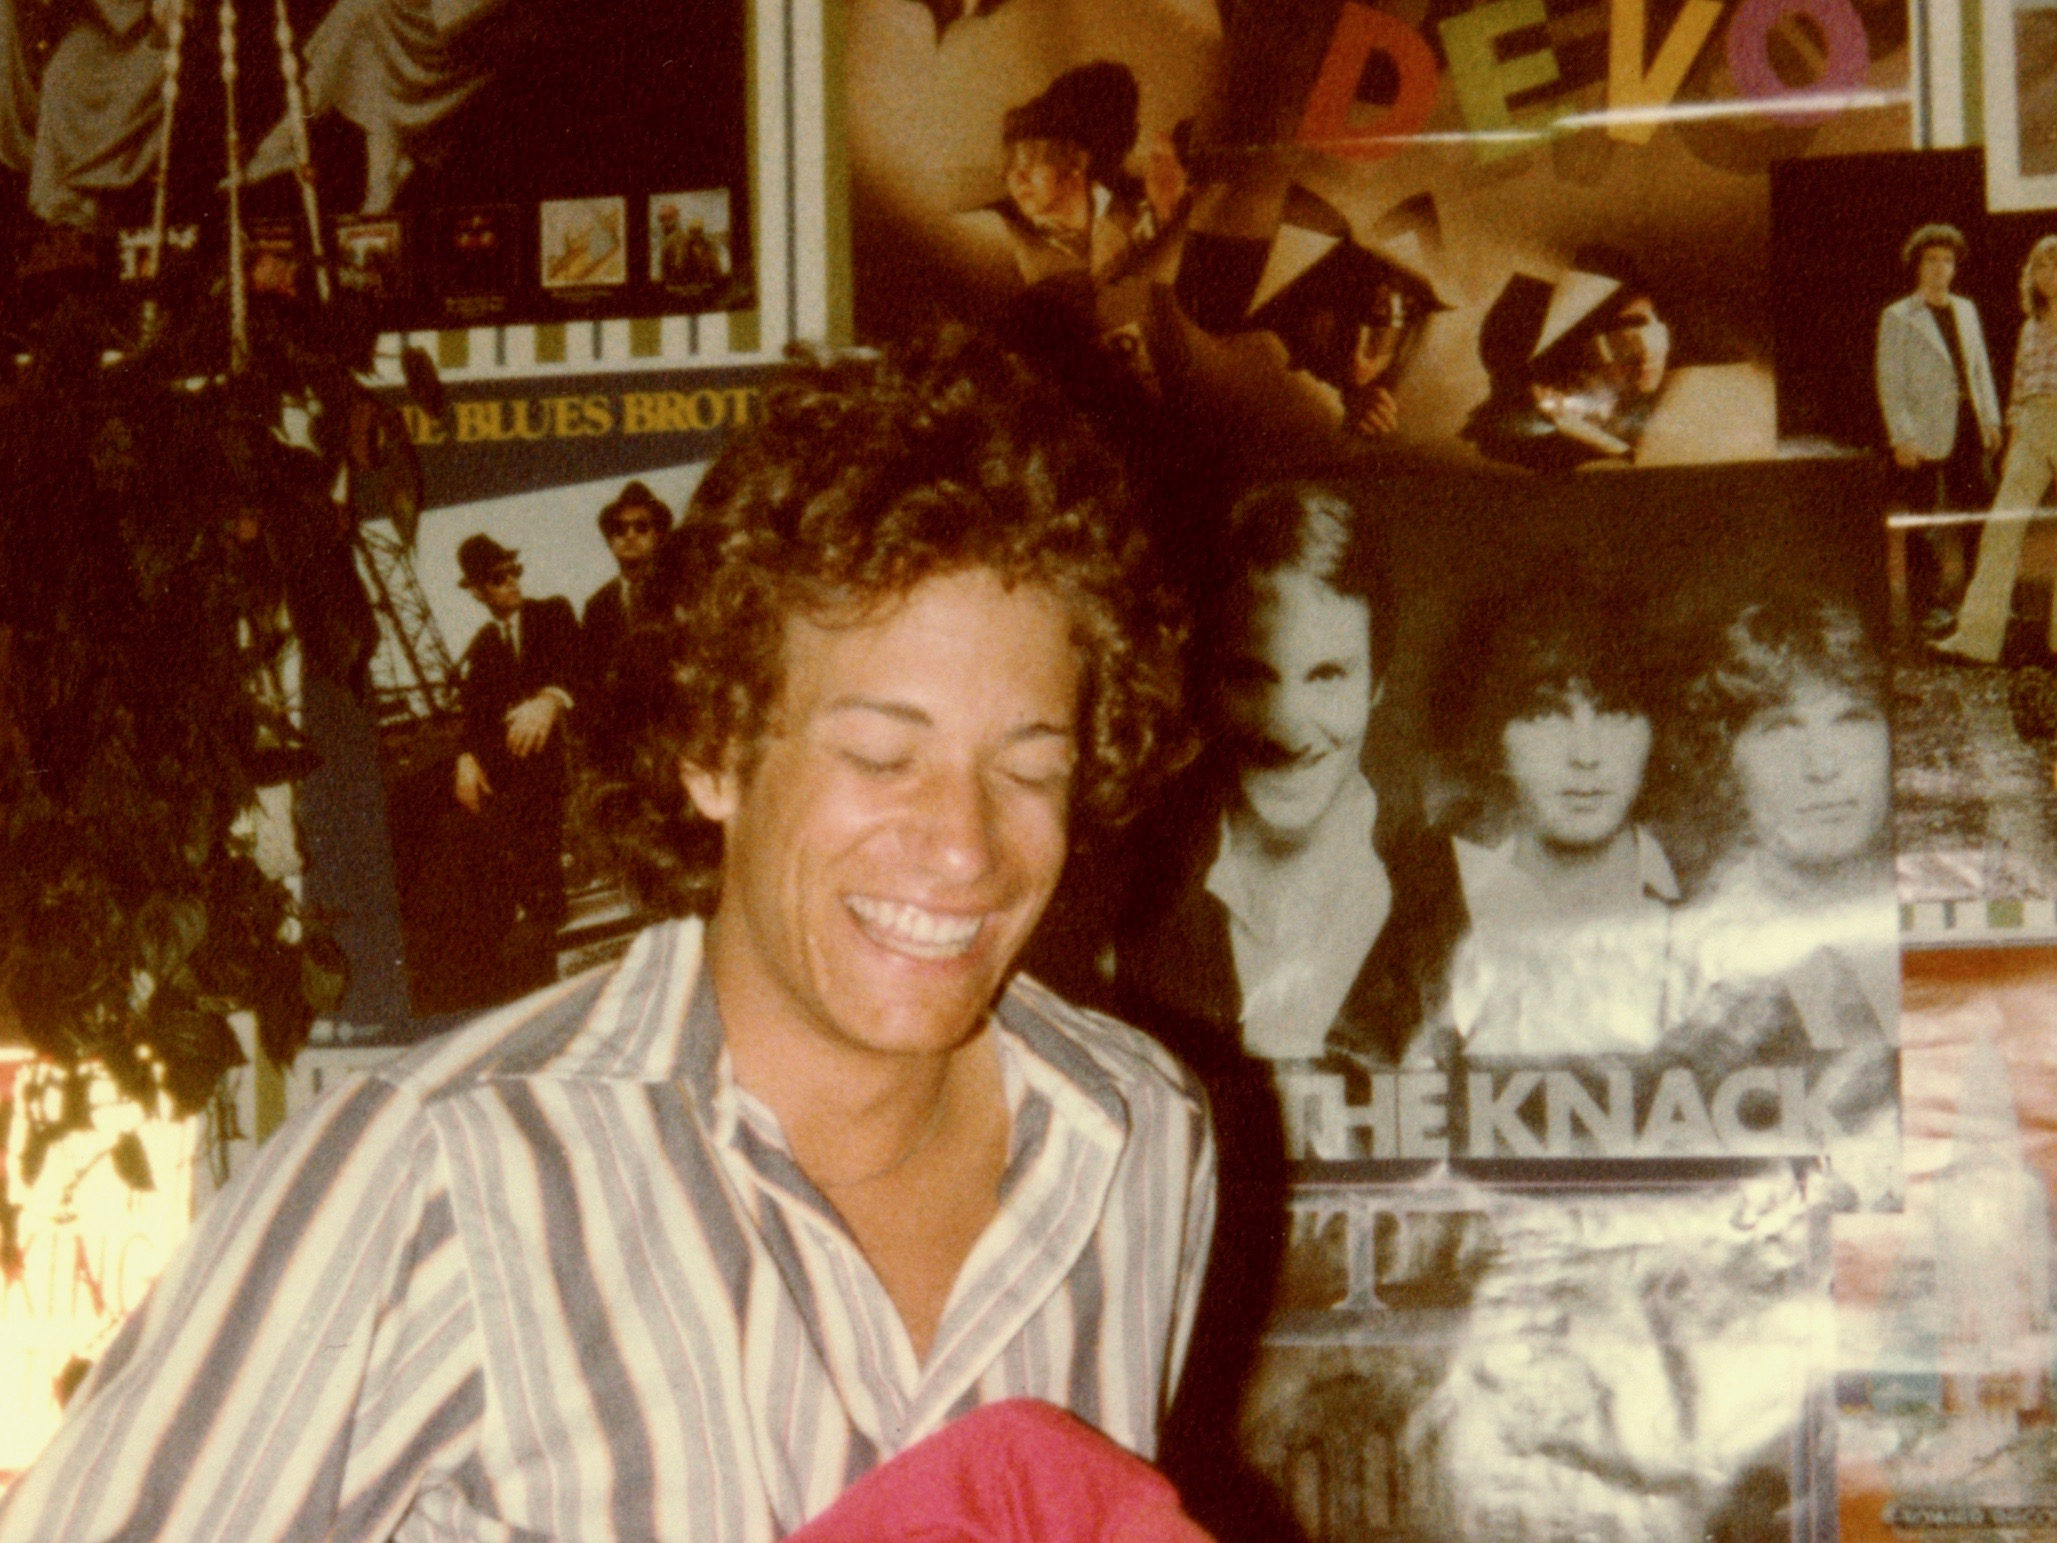 high school boy in 1981 with lots of rock and roll band posters